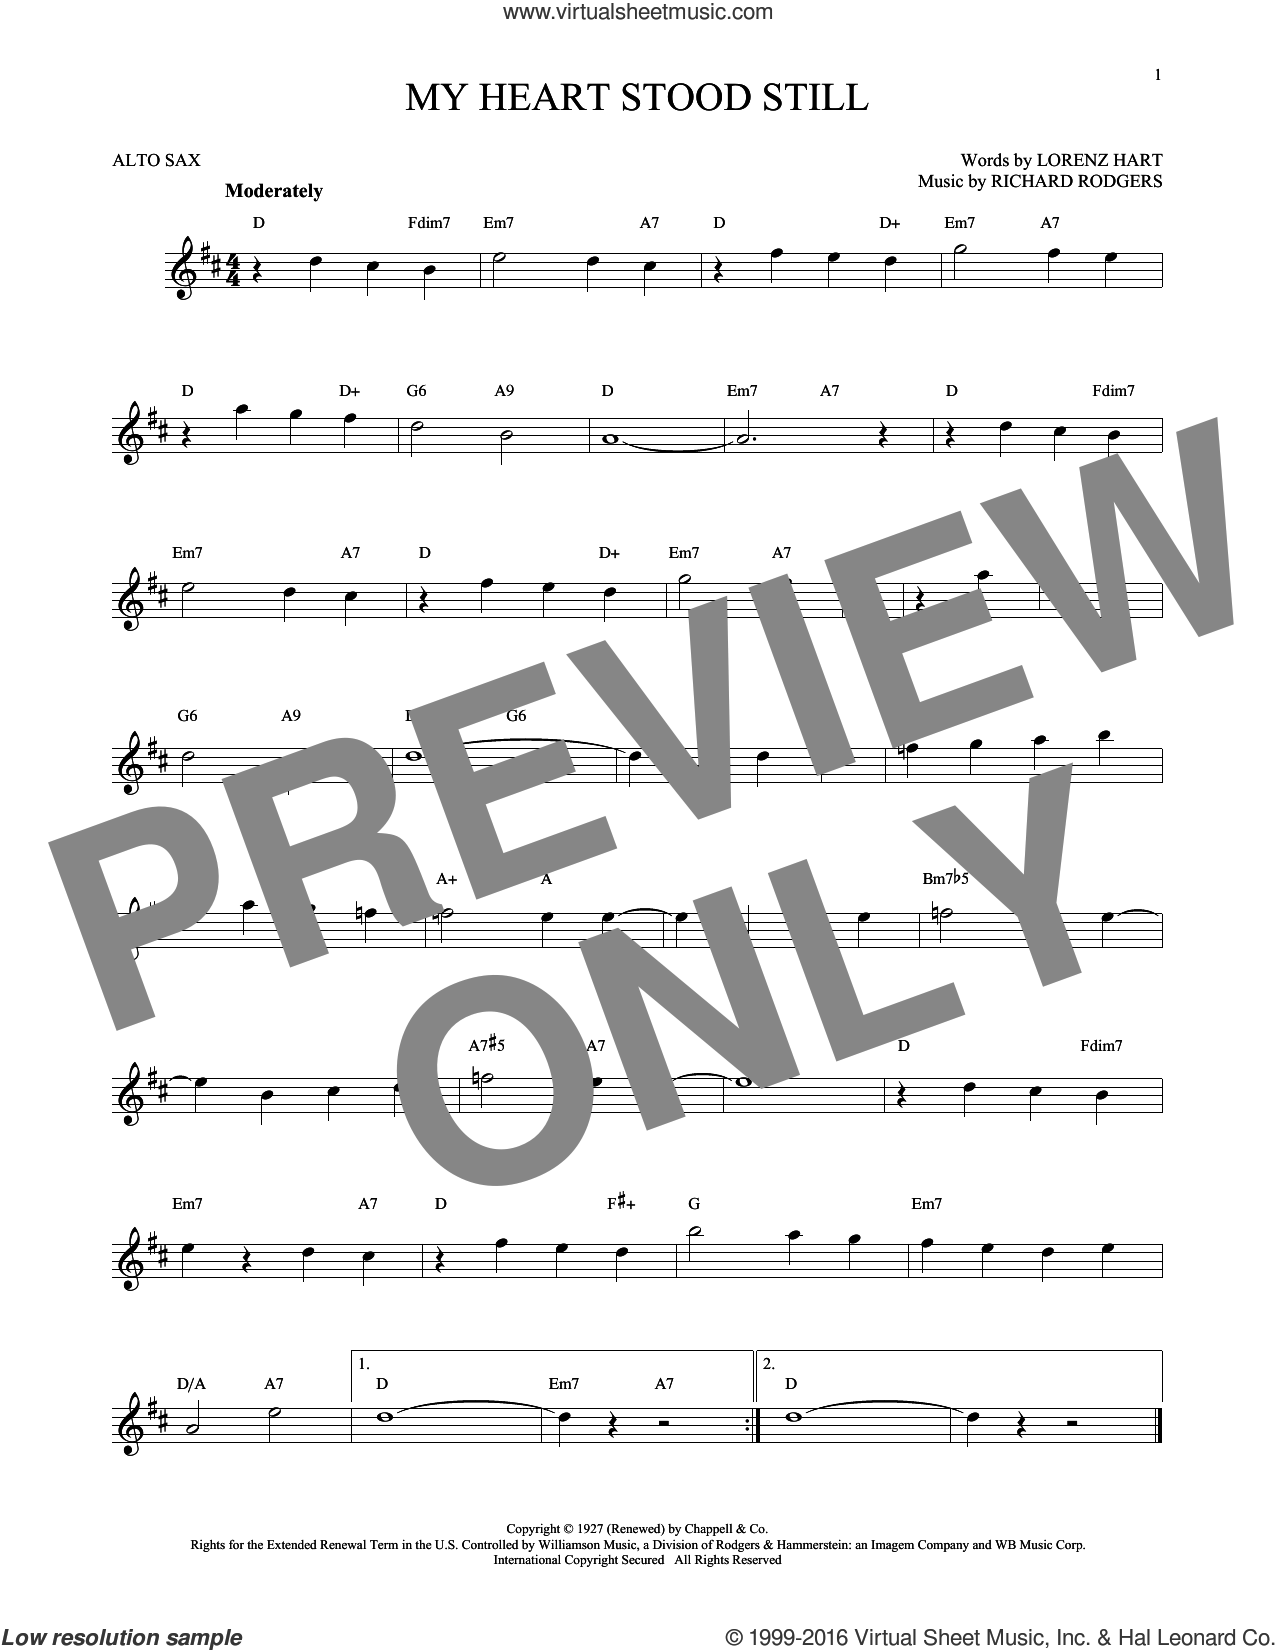 My Heart Stood Still sheet music for alto saxophone solo by Rodgers & Hart, Artie Shaw, Stan Getz, Lorenz Hart and Richard Rodgers, intermediate skill level